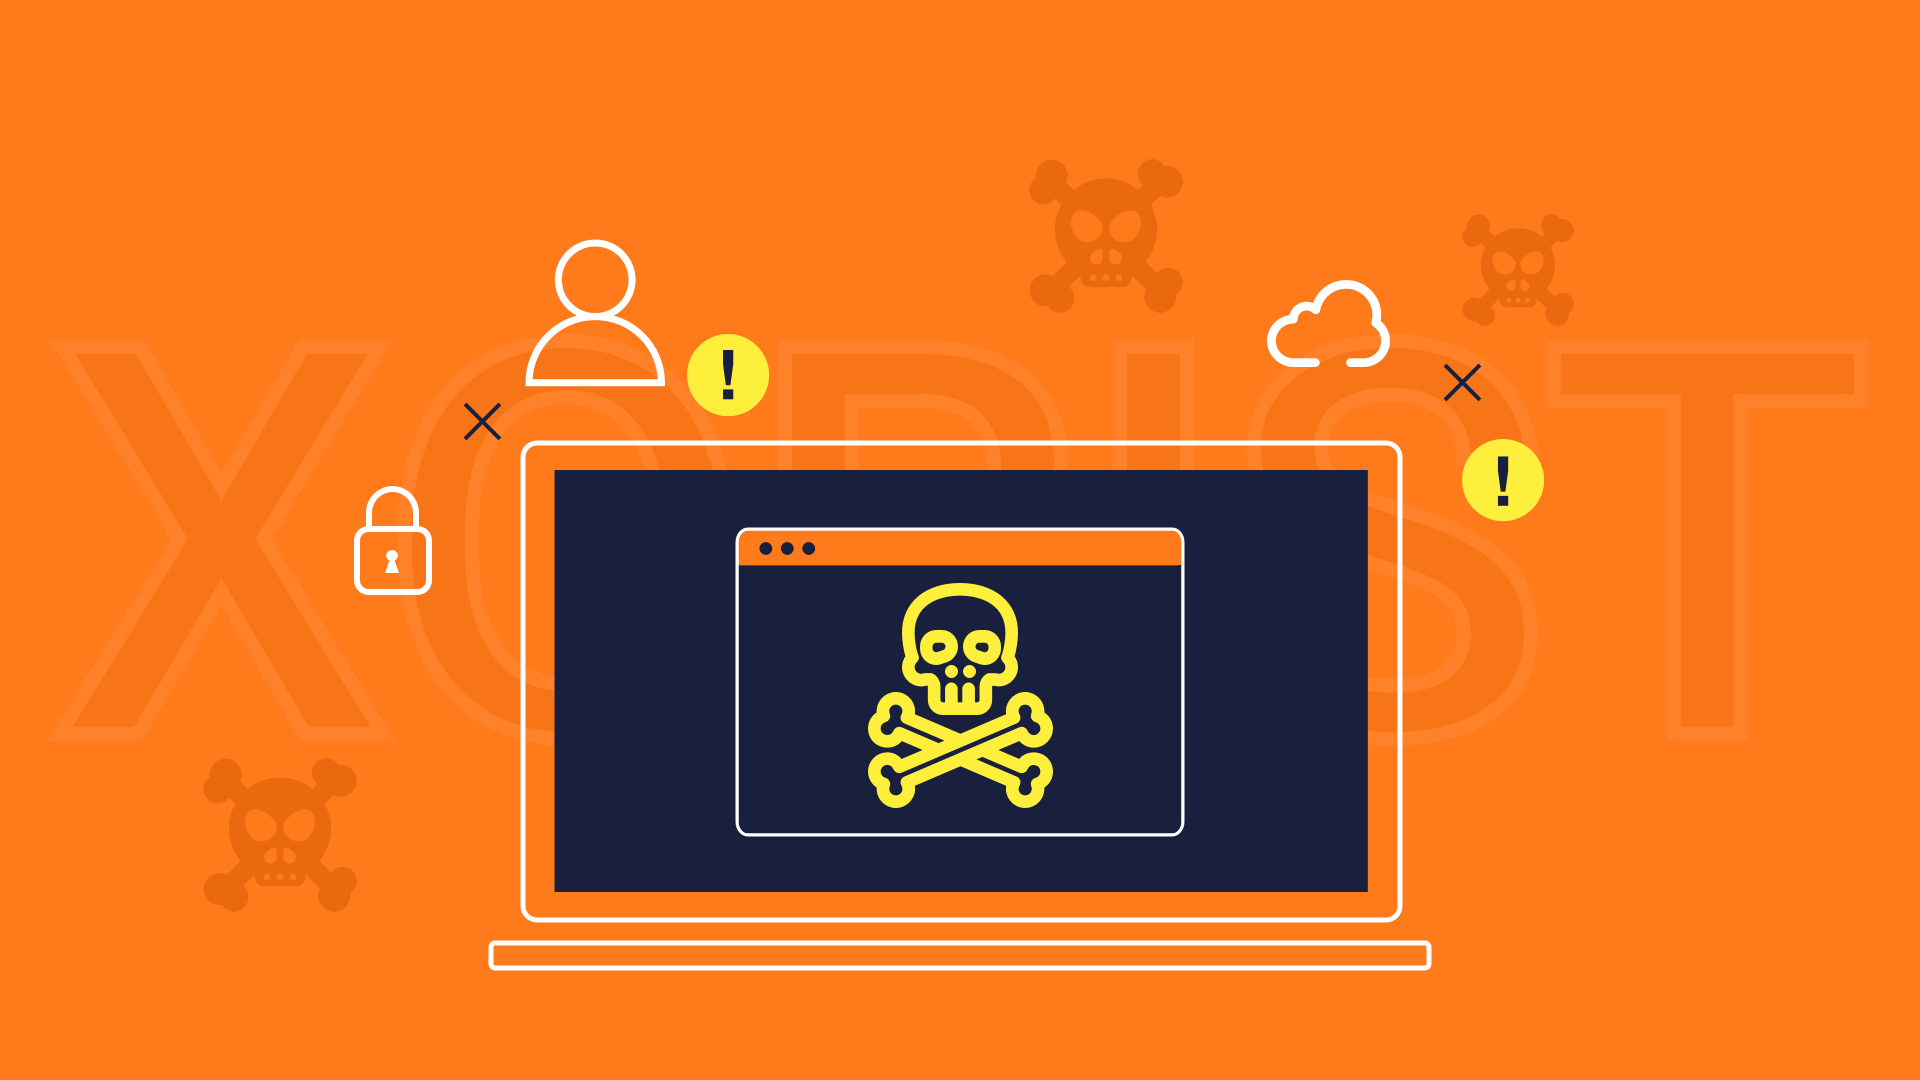 About Xorist Ransomware - What is it? Keep Your Privacy Well